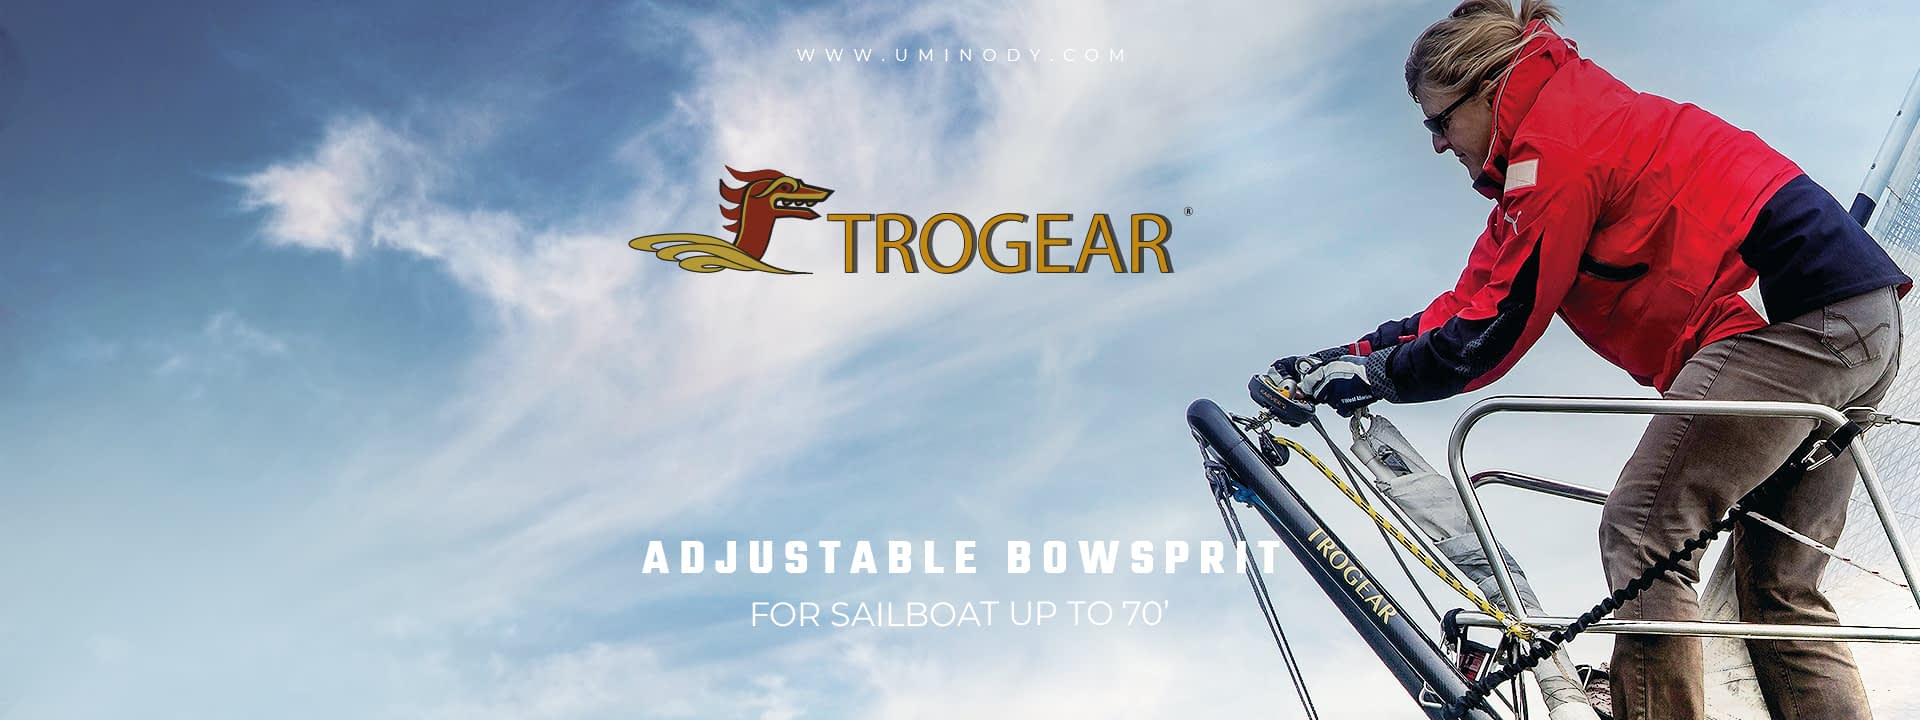 Trogear Adjustable Bowsprit for sailboats up to 70'